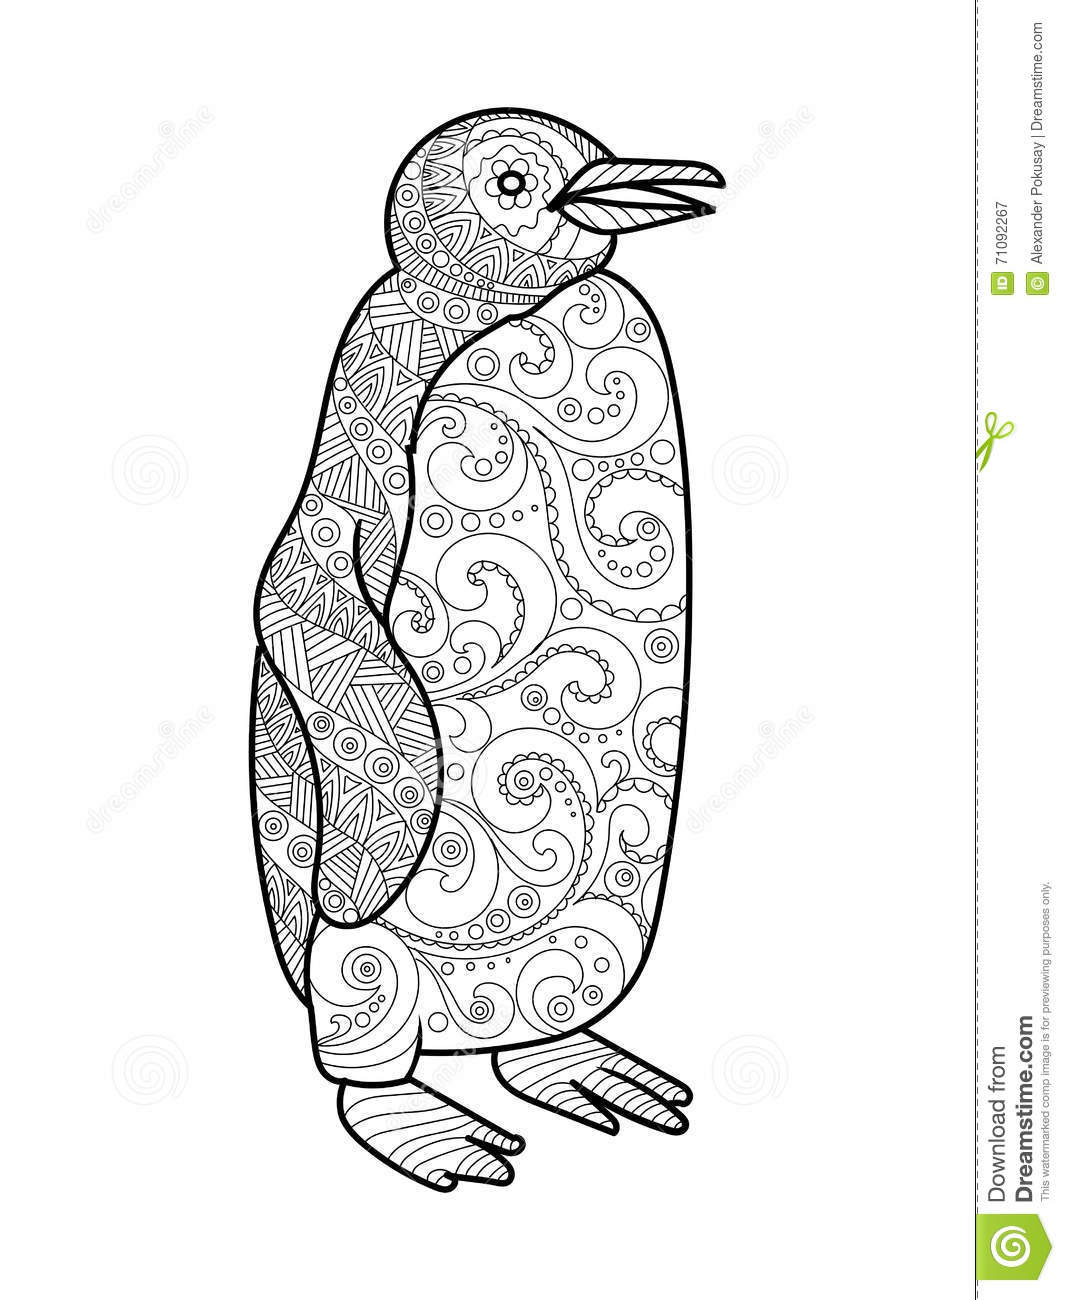 Penguin coloring book for adults vector stock illustration image